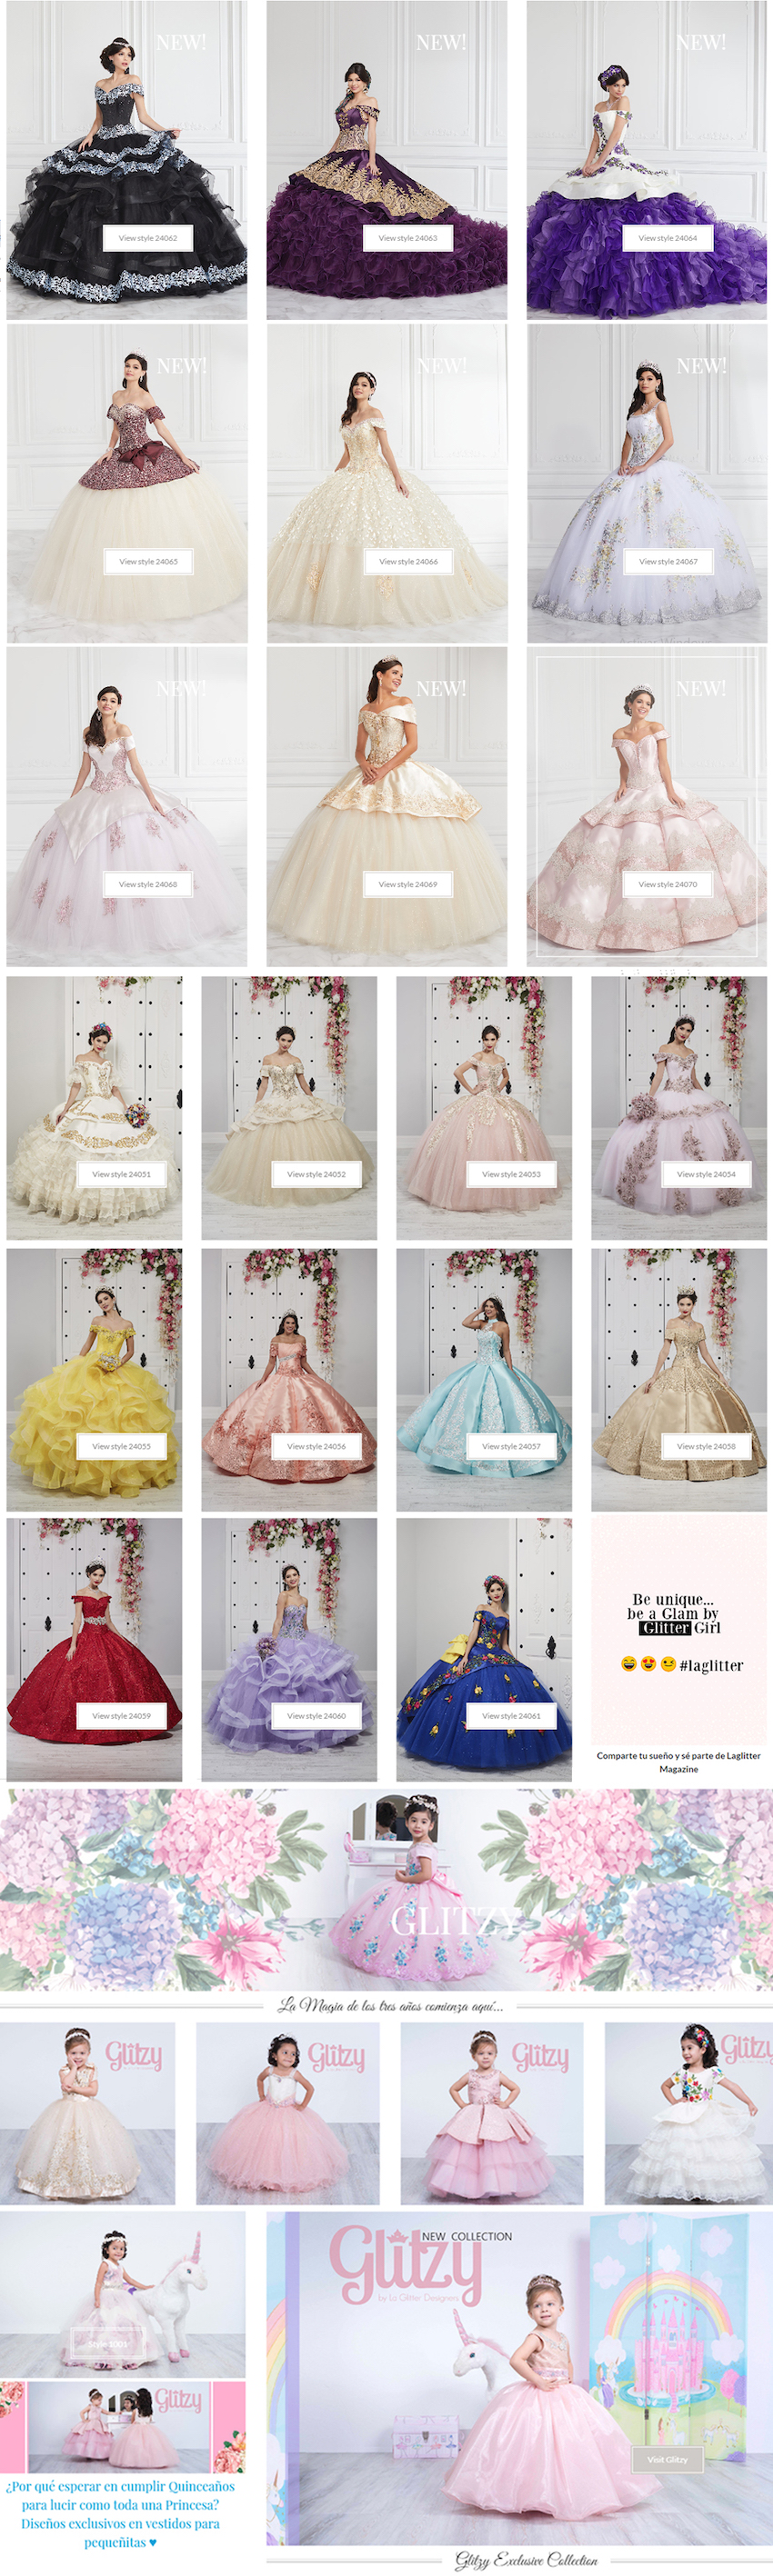 la glitter spring 2020 quinceanera collection